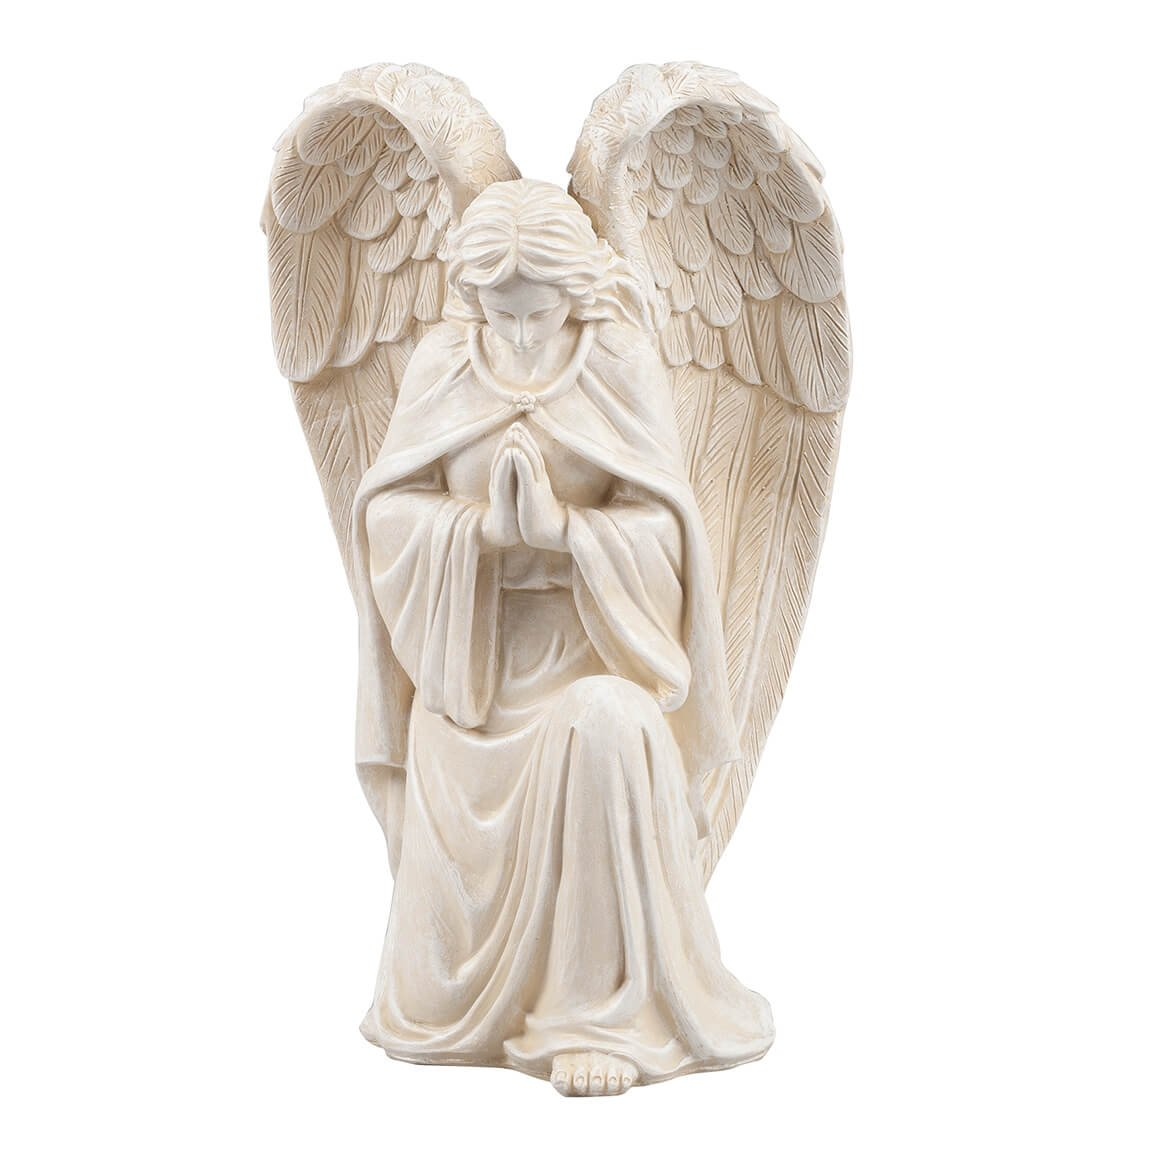 Fox Valley Traders WalterDrake White Resin Angel Statue - Religious Garden Statue Remembrance Memorial Guardian Angel - 16 inch